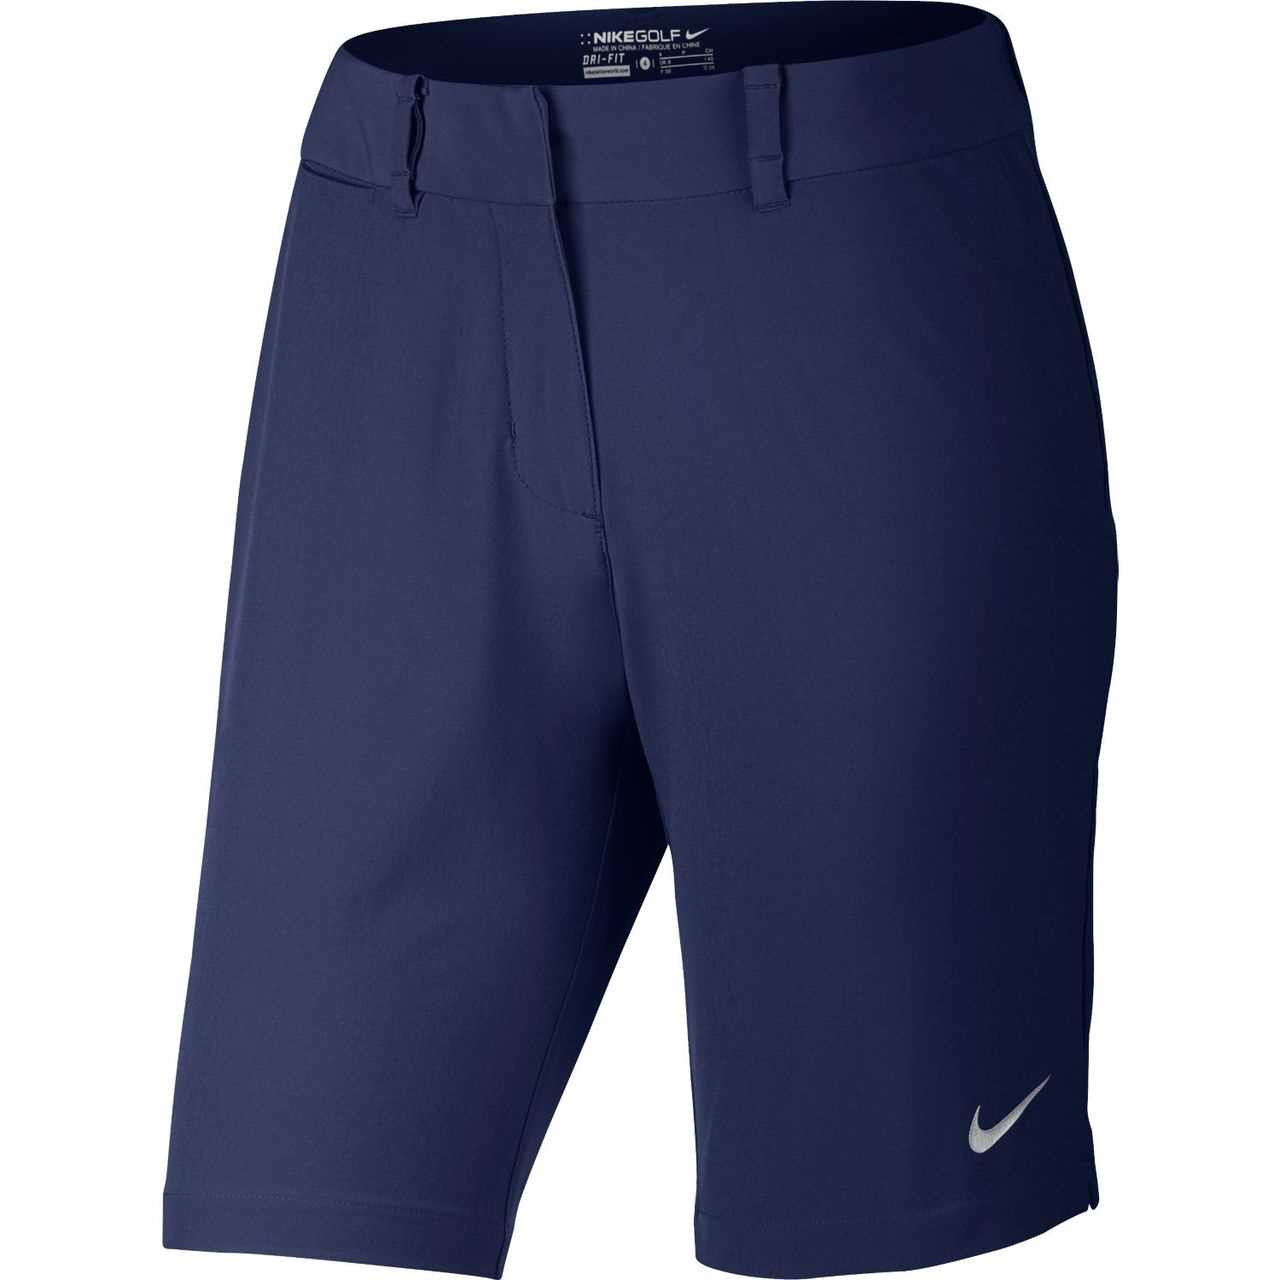 Nike Bermuda Solid Womens Golf Shorts Midnight Navy further Sahara Davenport Antoine Ashley Death Rip Facts likewise Frog In Your Underpants additionally Happy Birthday further Tottenham Hotspur Cap Tp 9620 P. on golf gifts for him